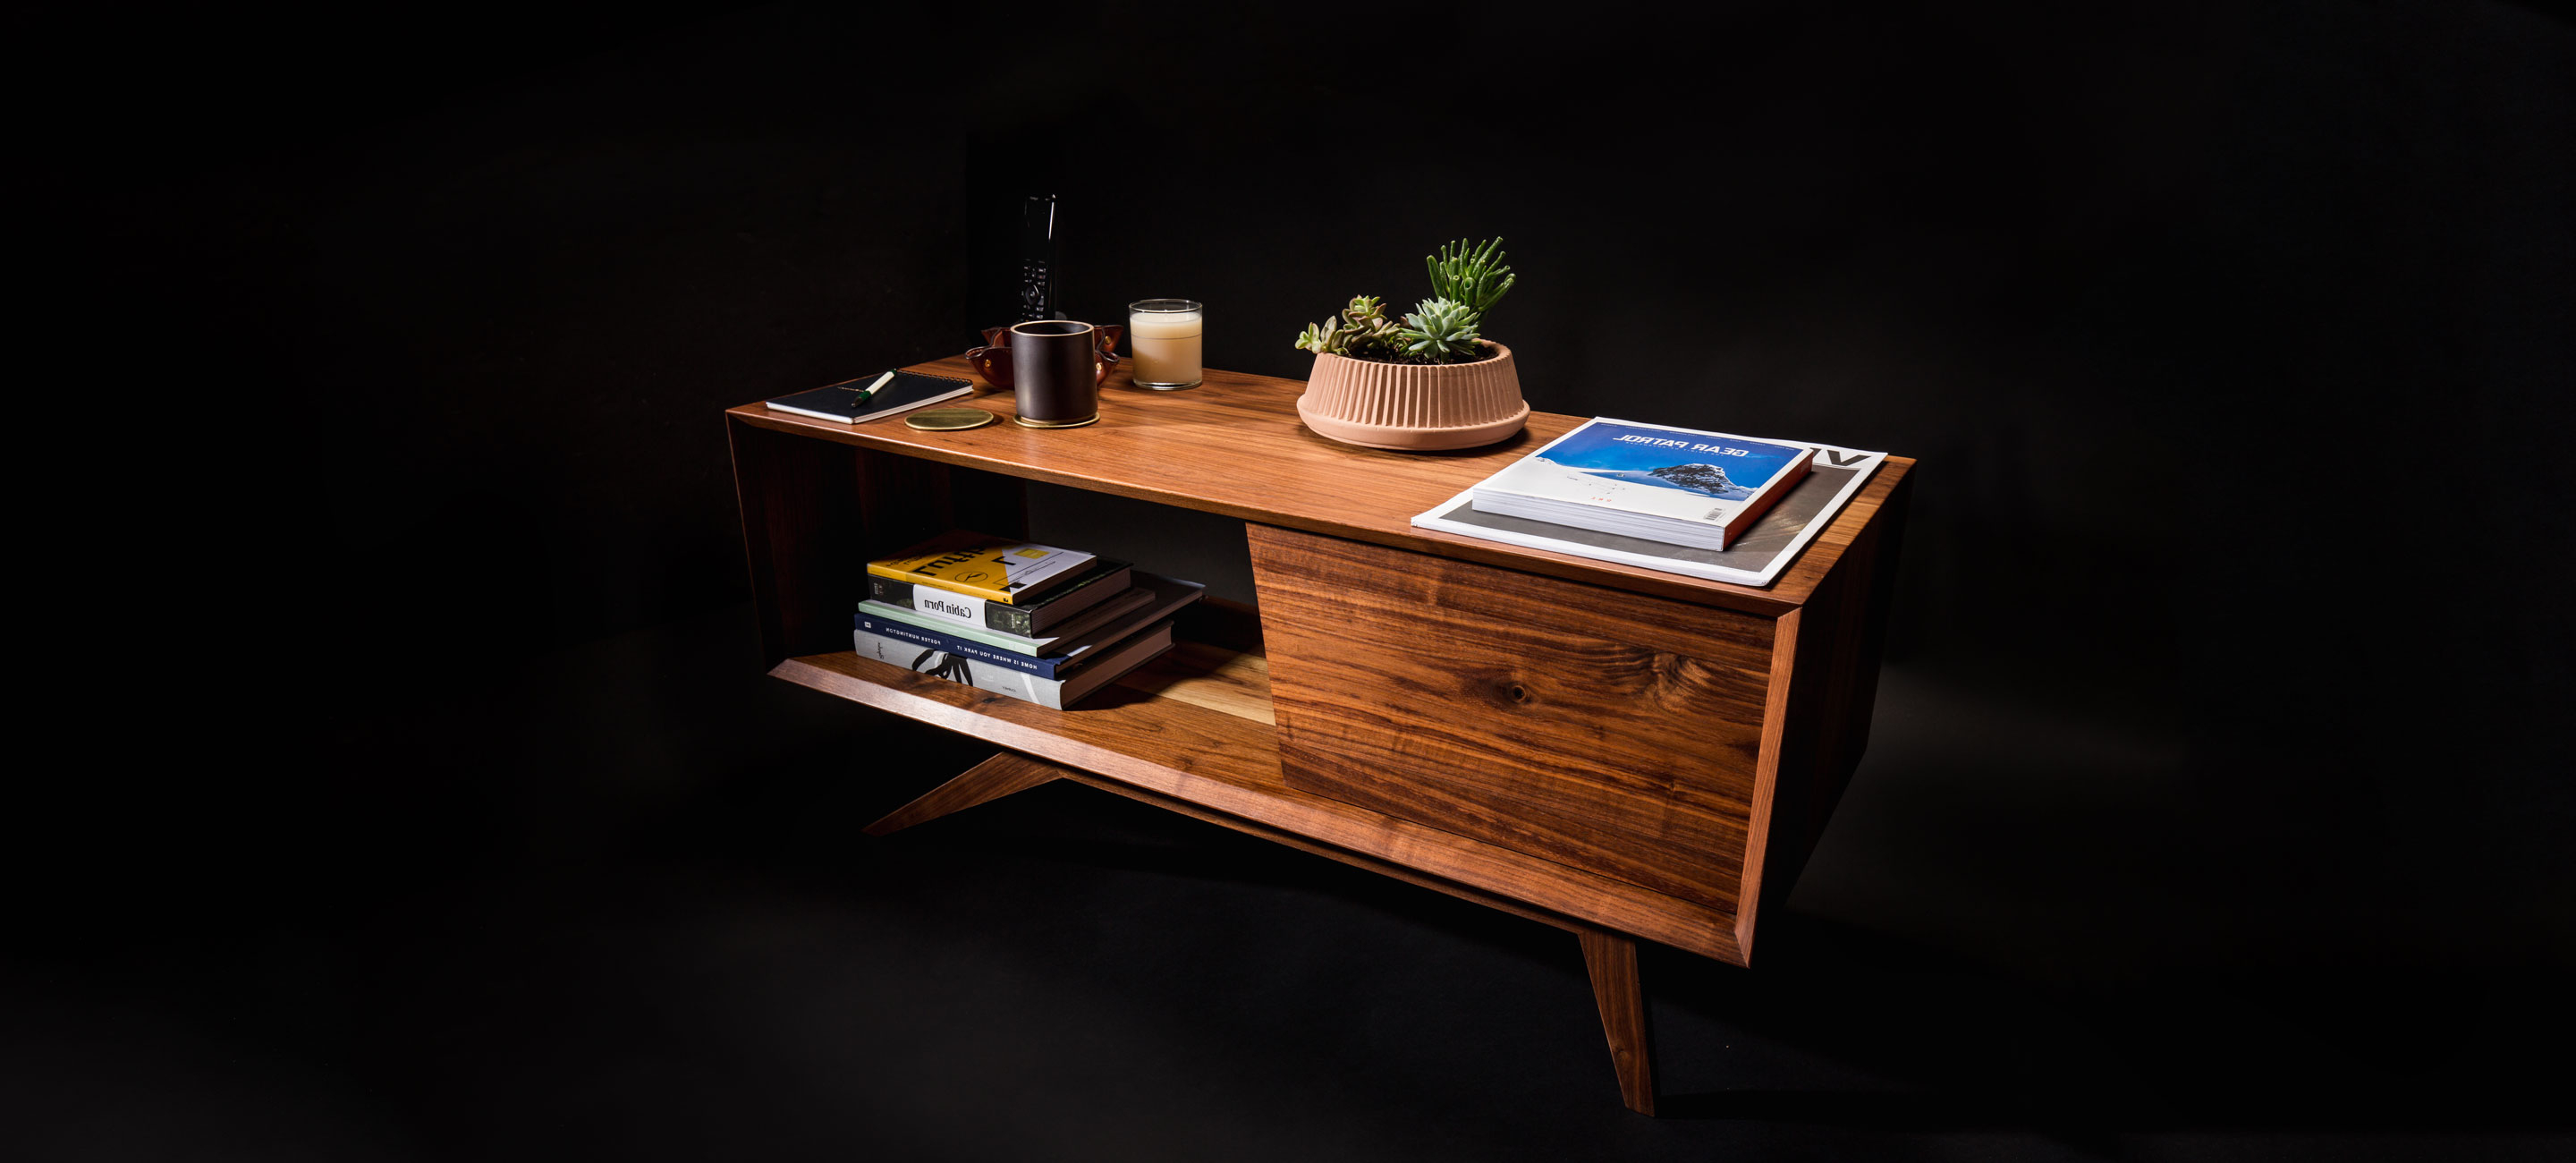 Famous The Ultimate Coffee Table Buying Guide – Gear Patrol In Mountainier Cocktail Tables (View 6 of 20)